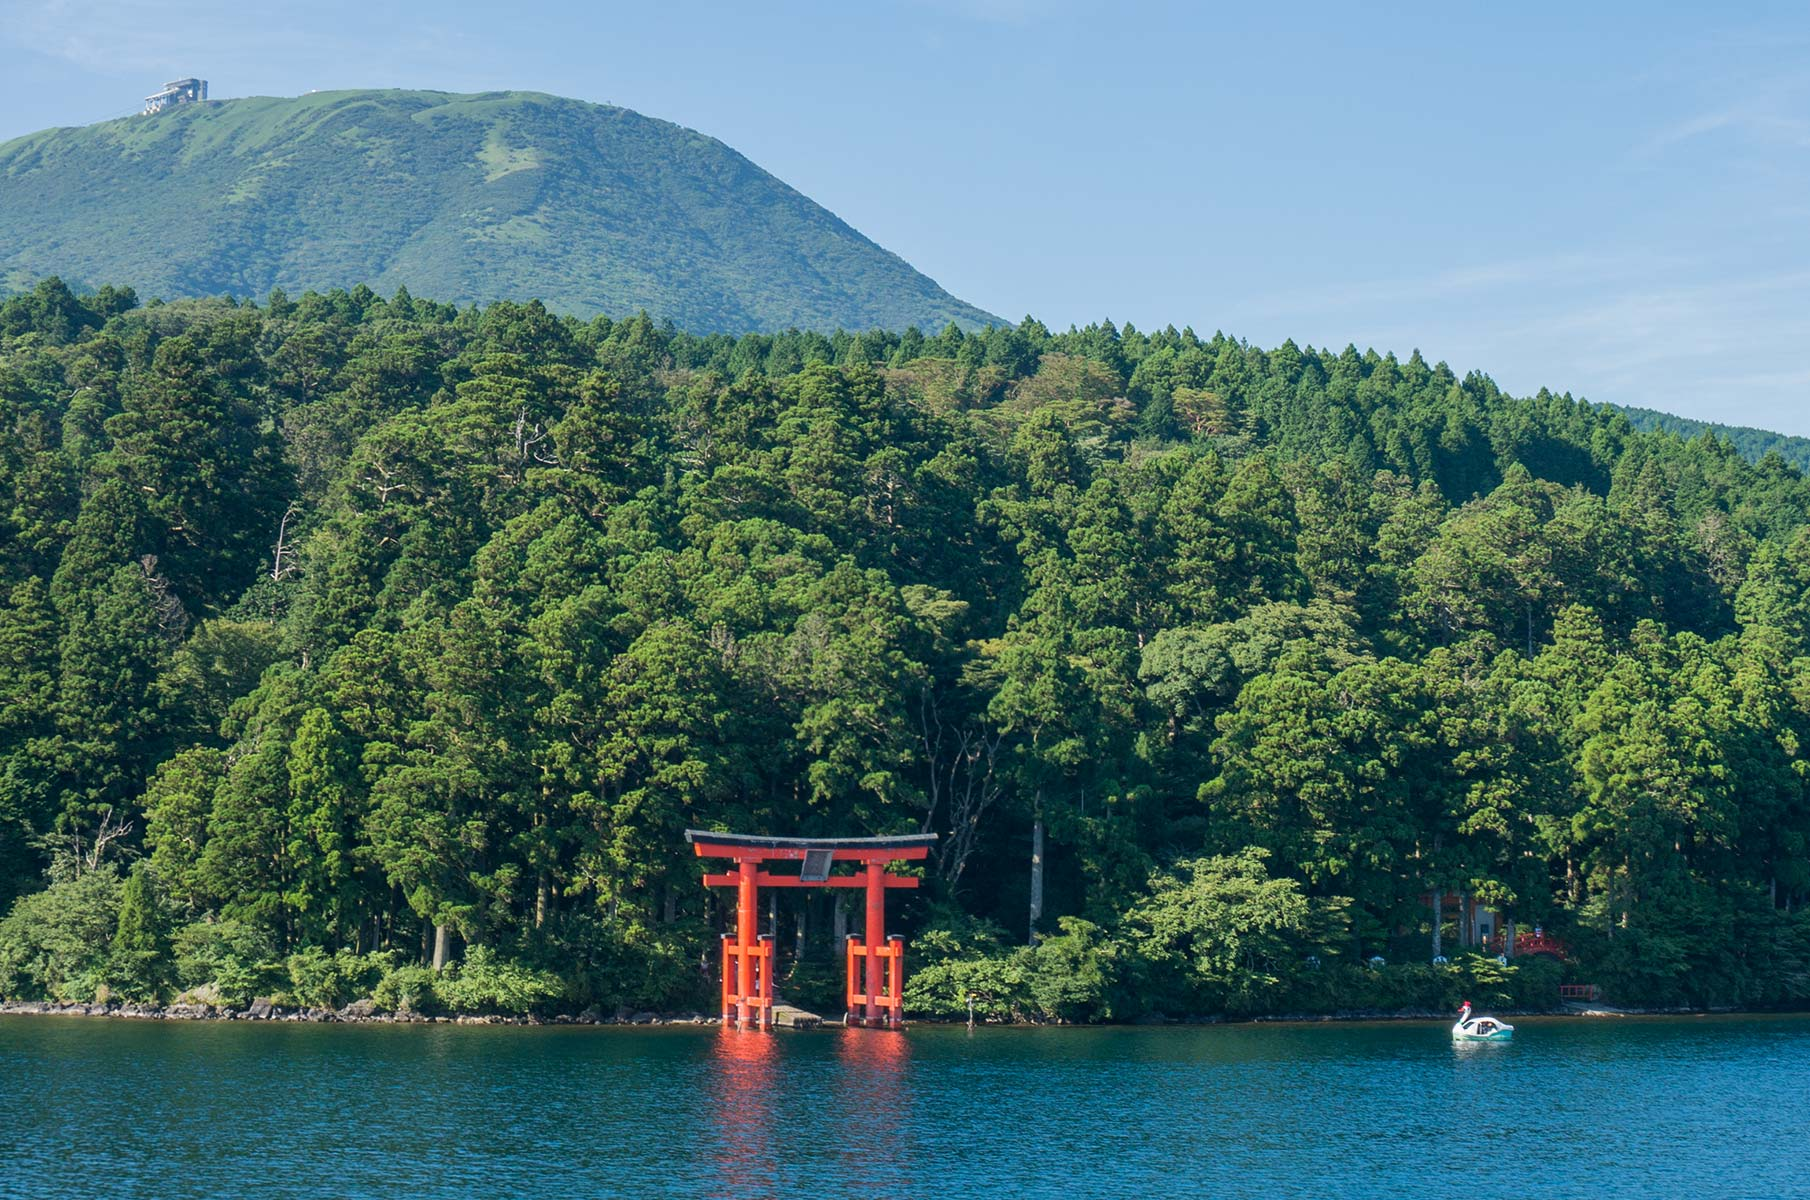 Shinto Schrein am Ashi See in Hakone Gora, Japan